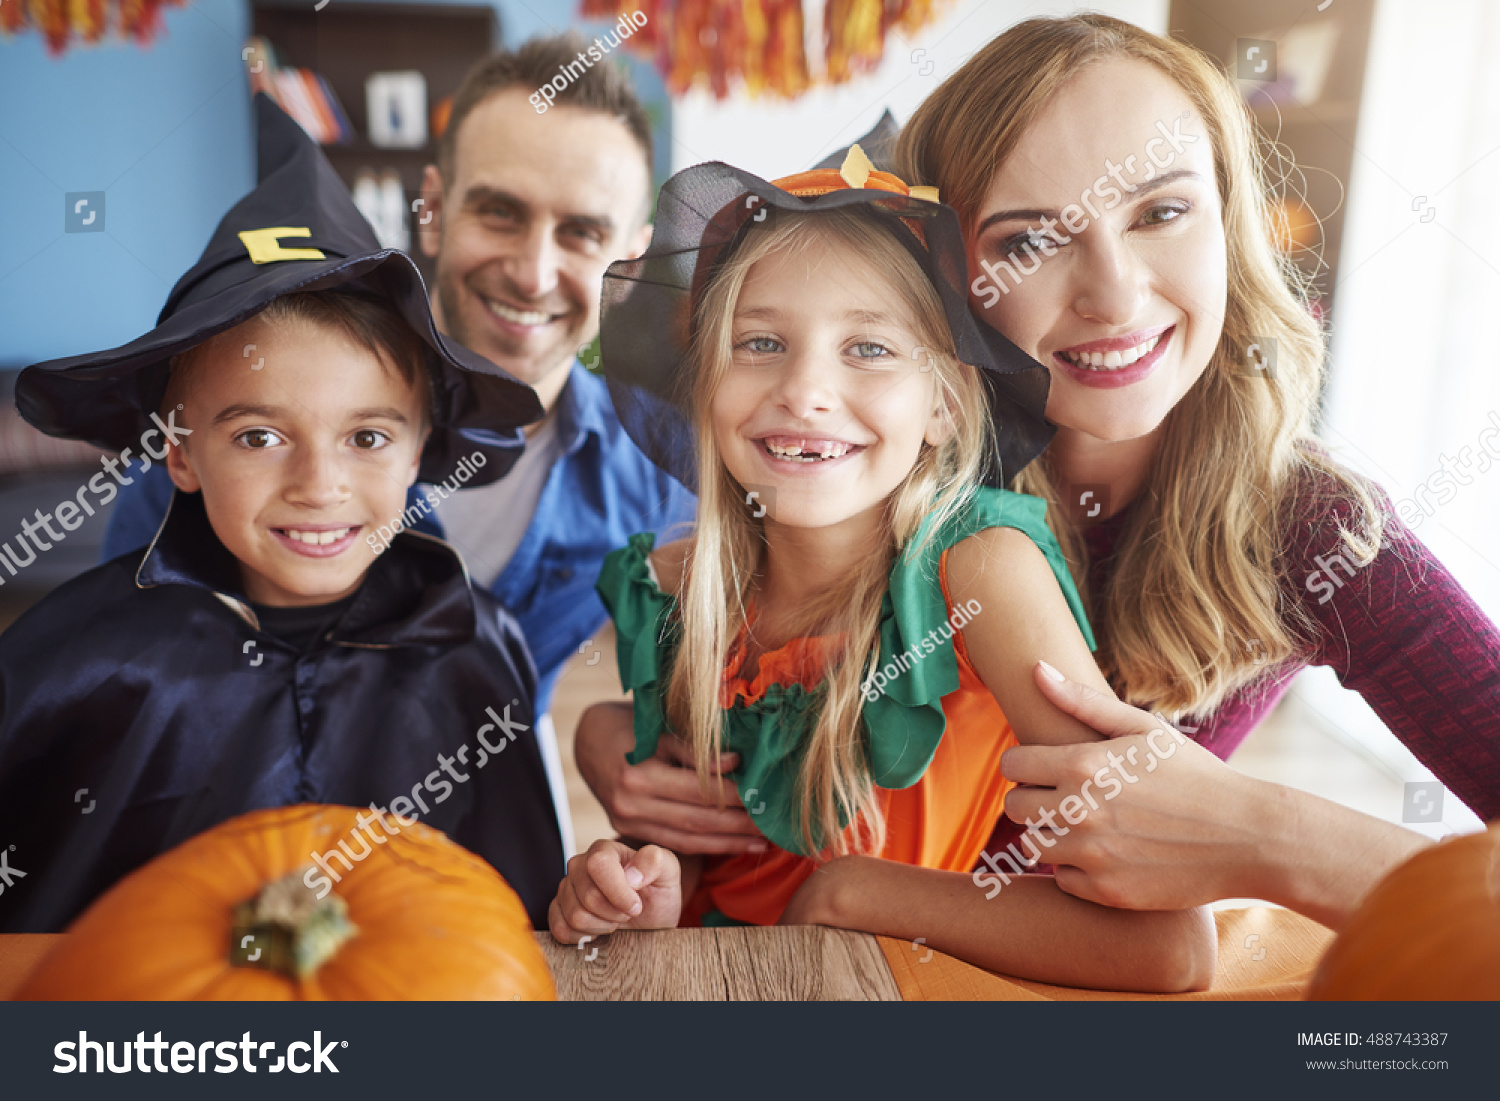 happy family during halloween celebration - What Is Halloween A Celebration Of